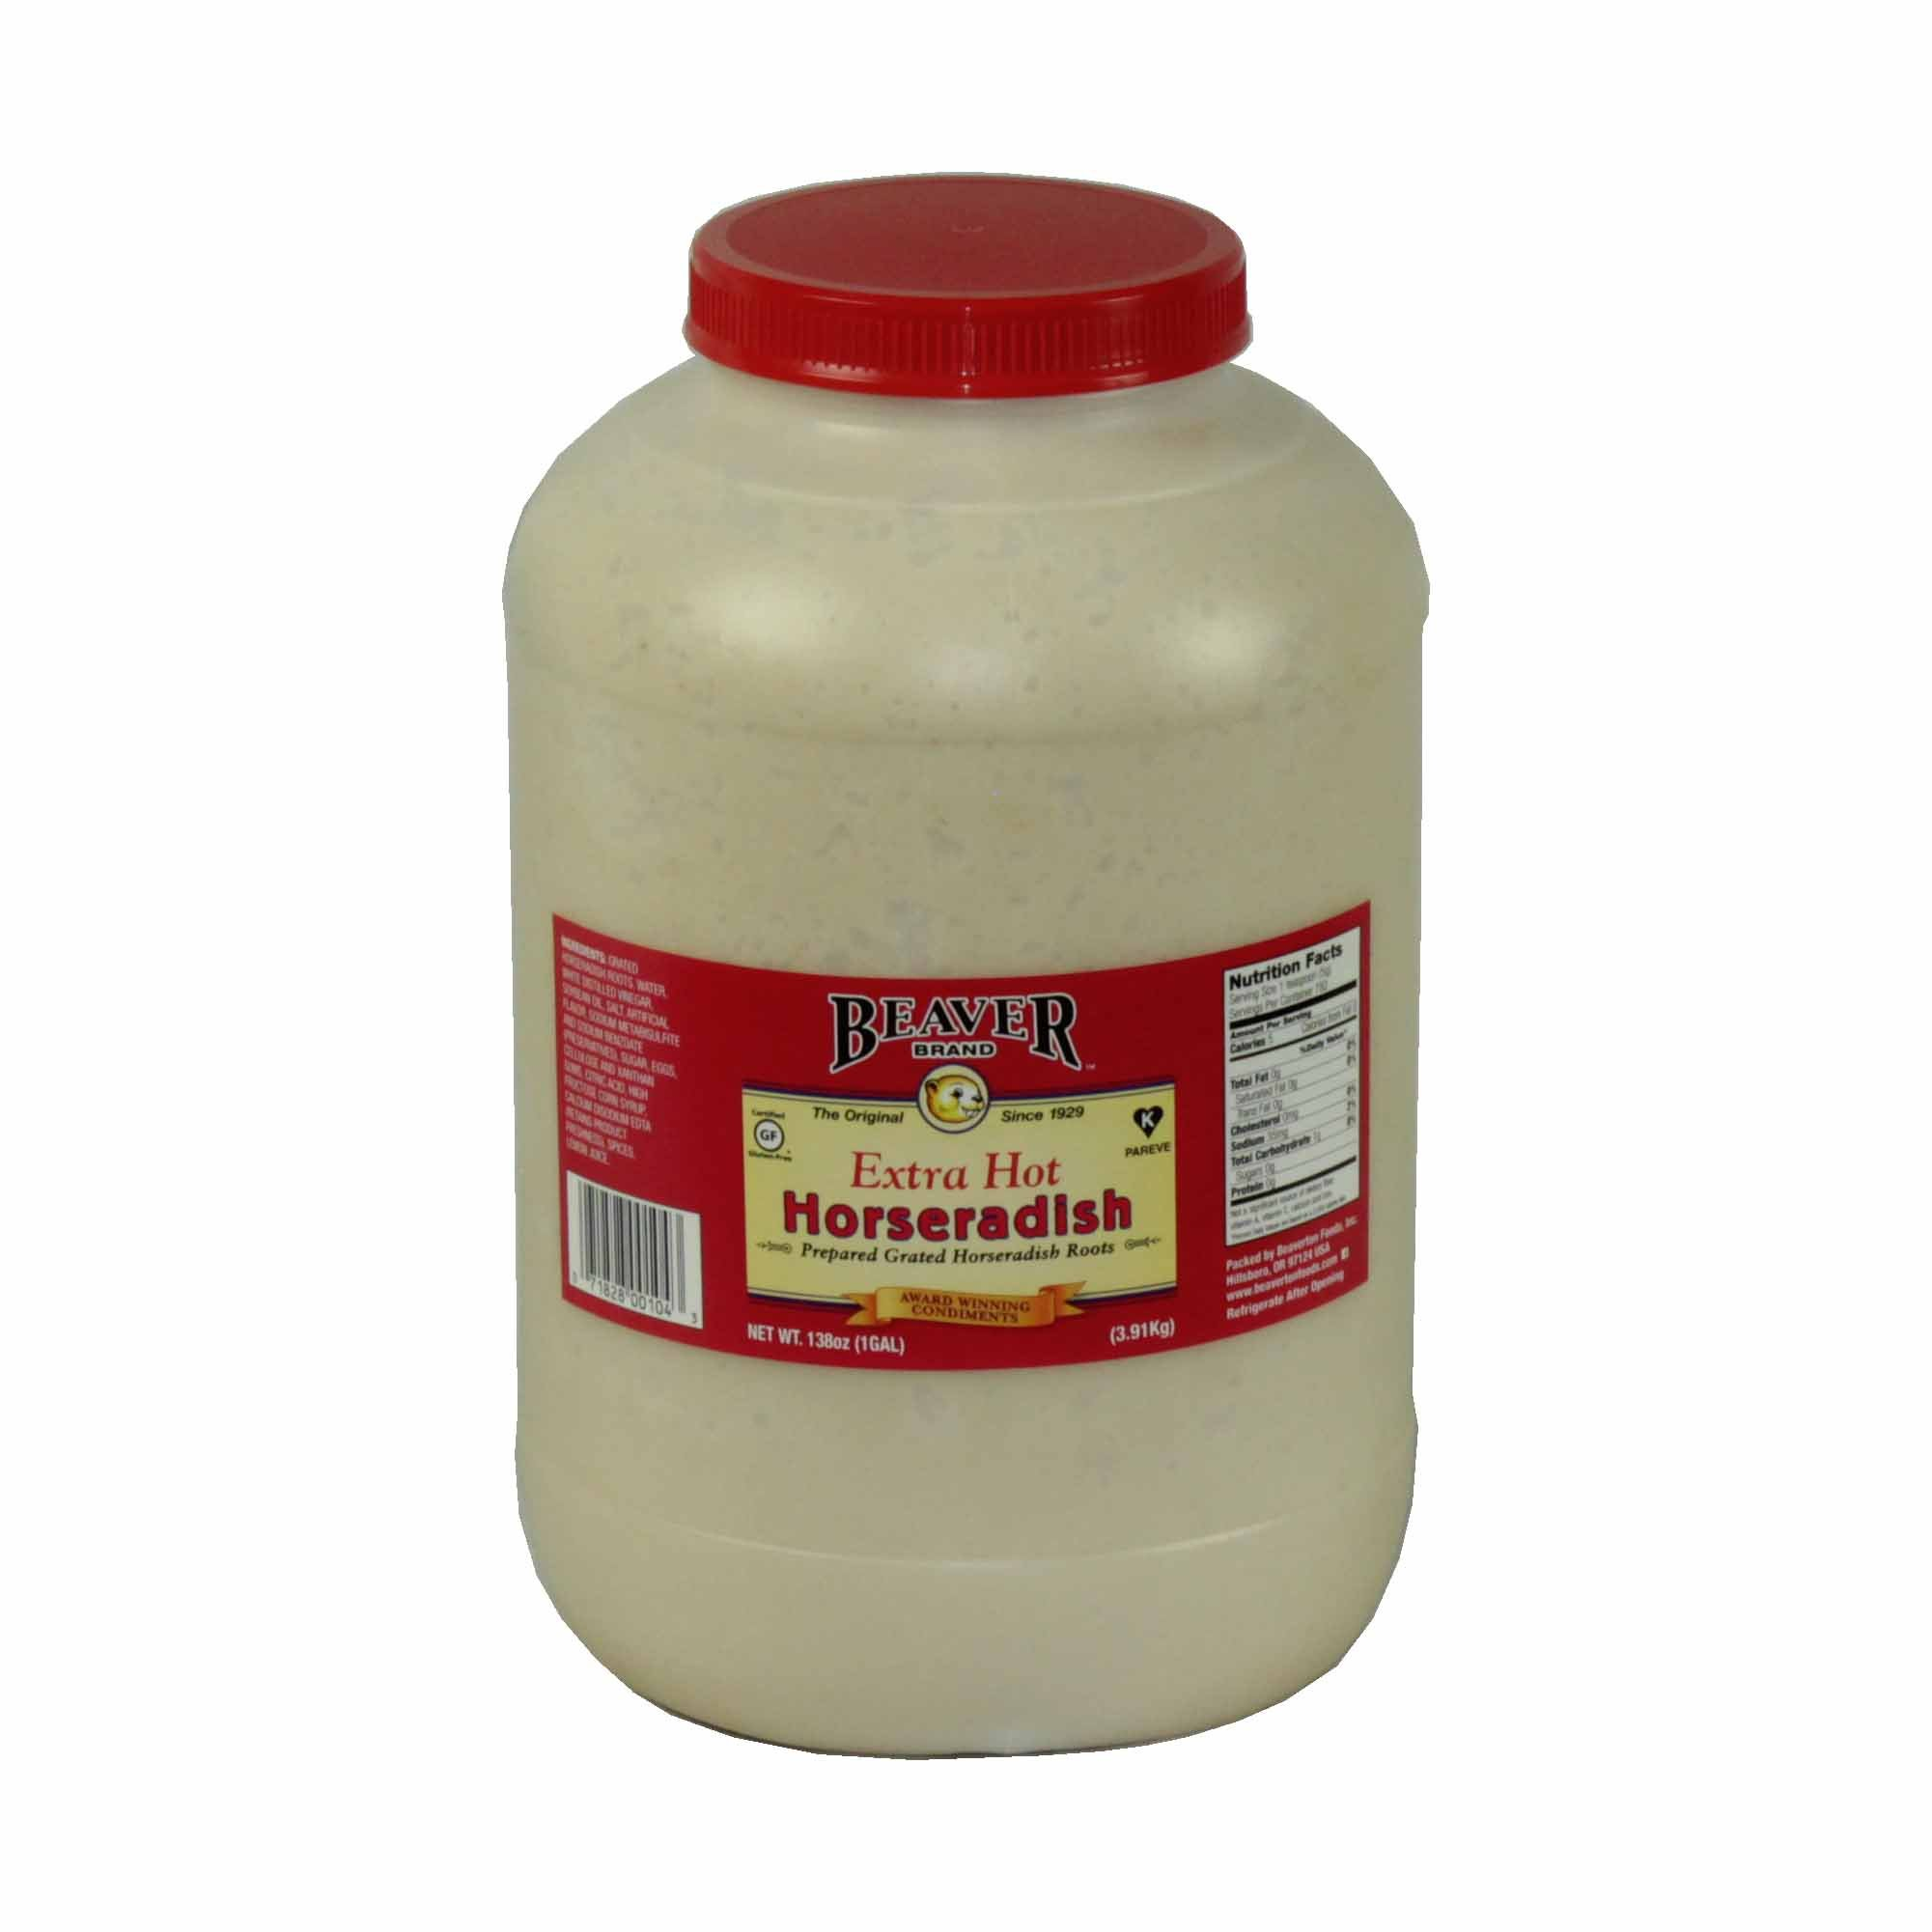 Beaver, Extra Hot Horseradish 1 Gallon (4 count)